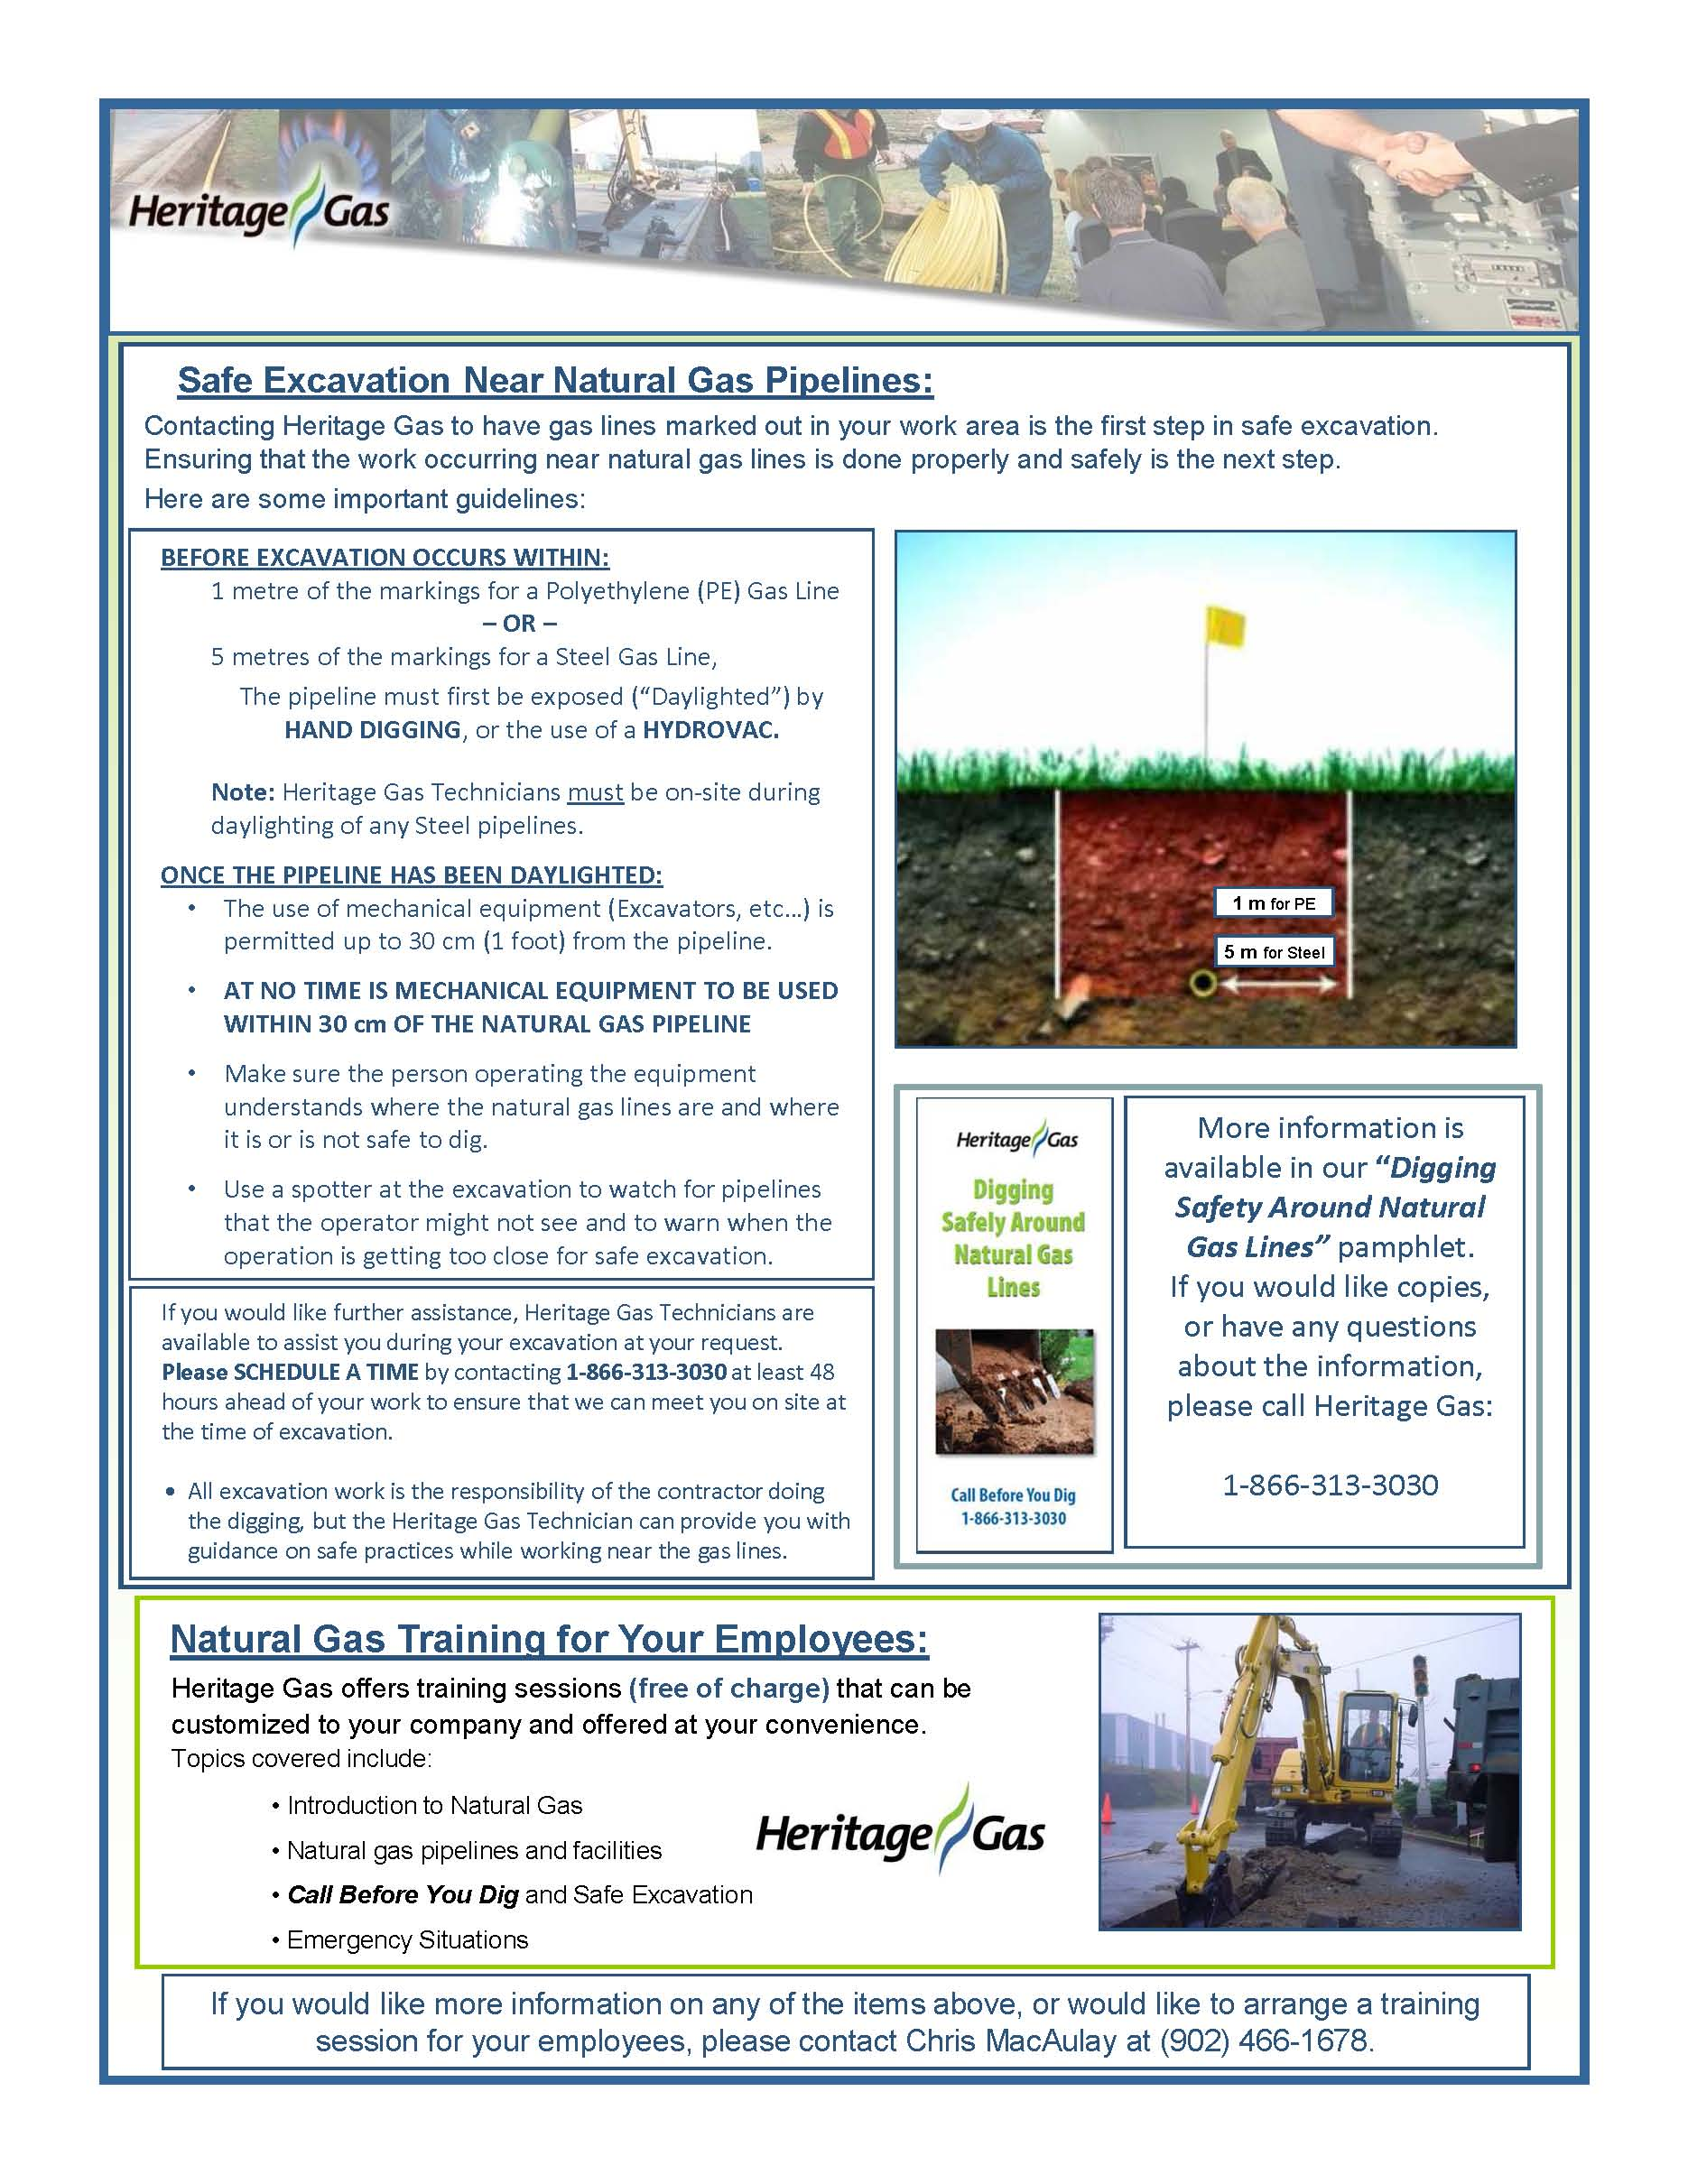 Heritage Gas Page 2